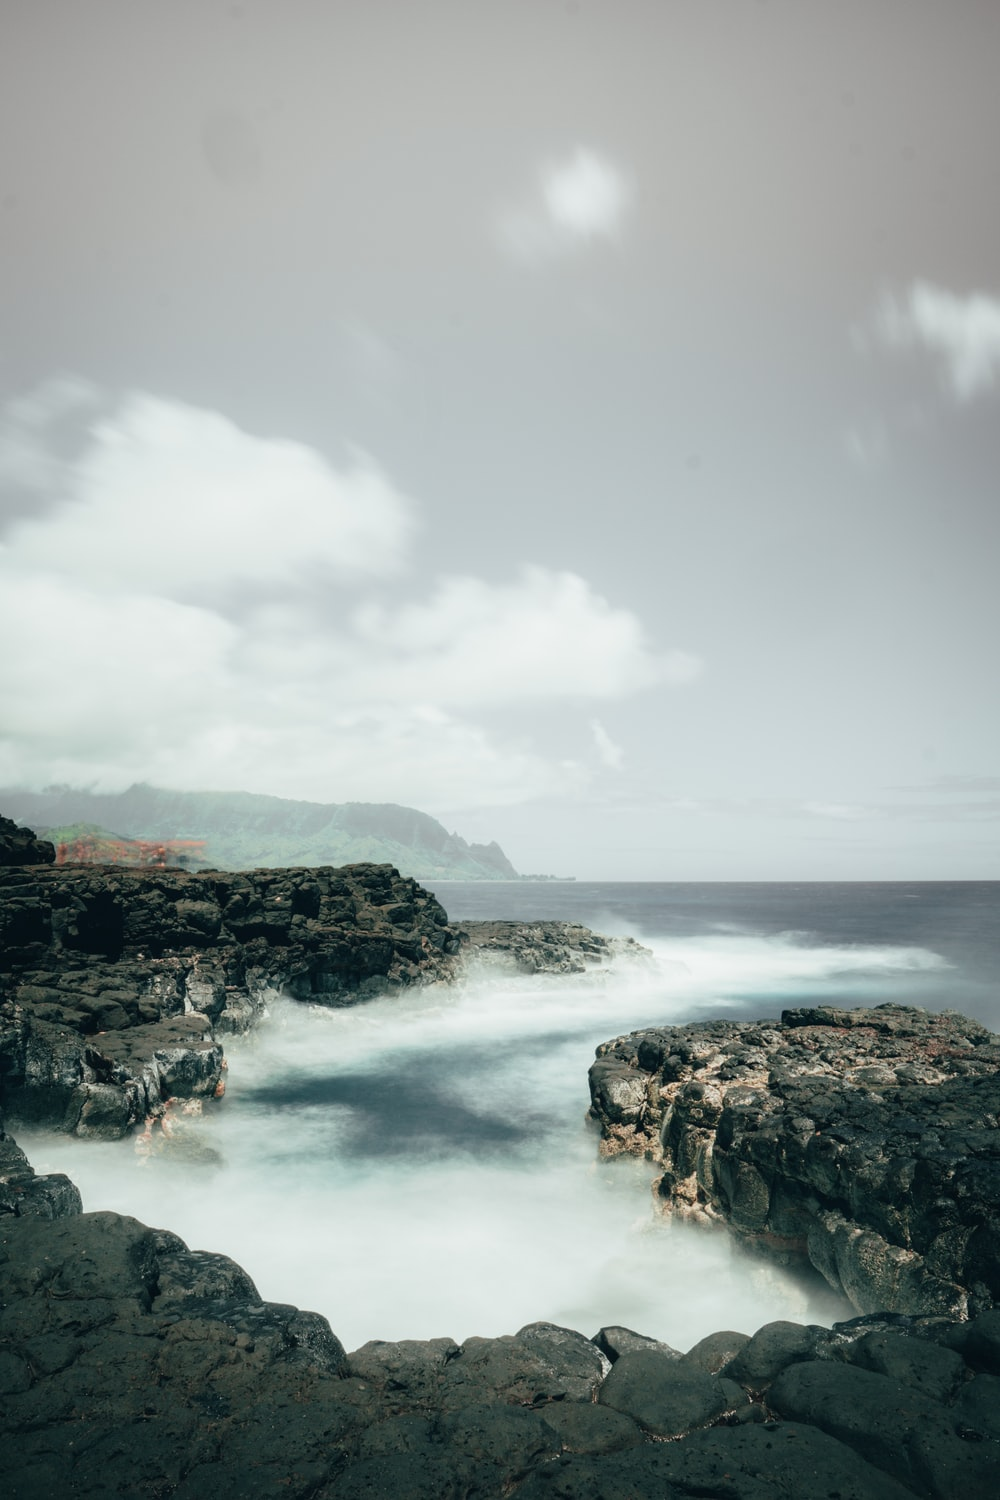 ocean waves crashing on rocky shore under white cloudy sky during daytime